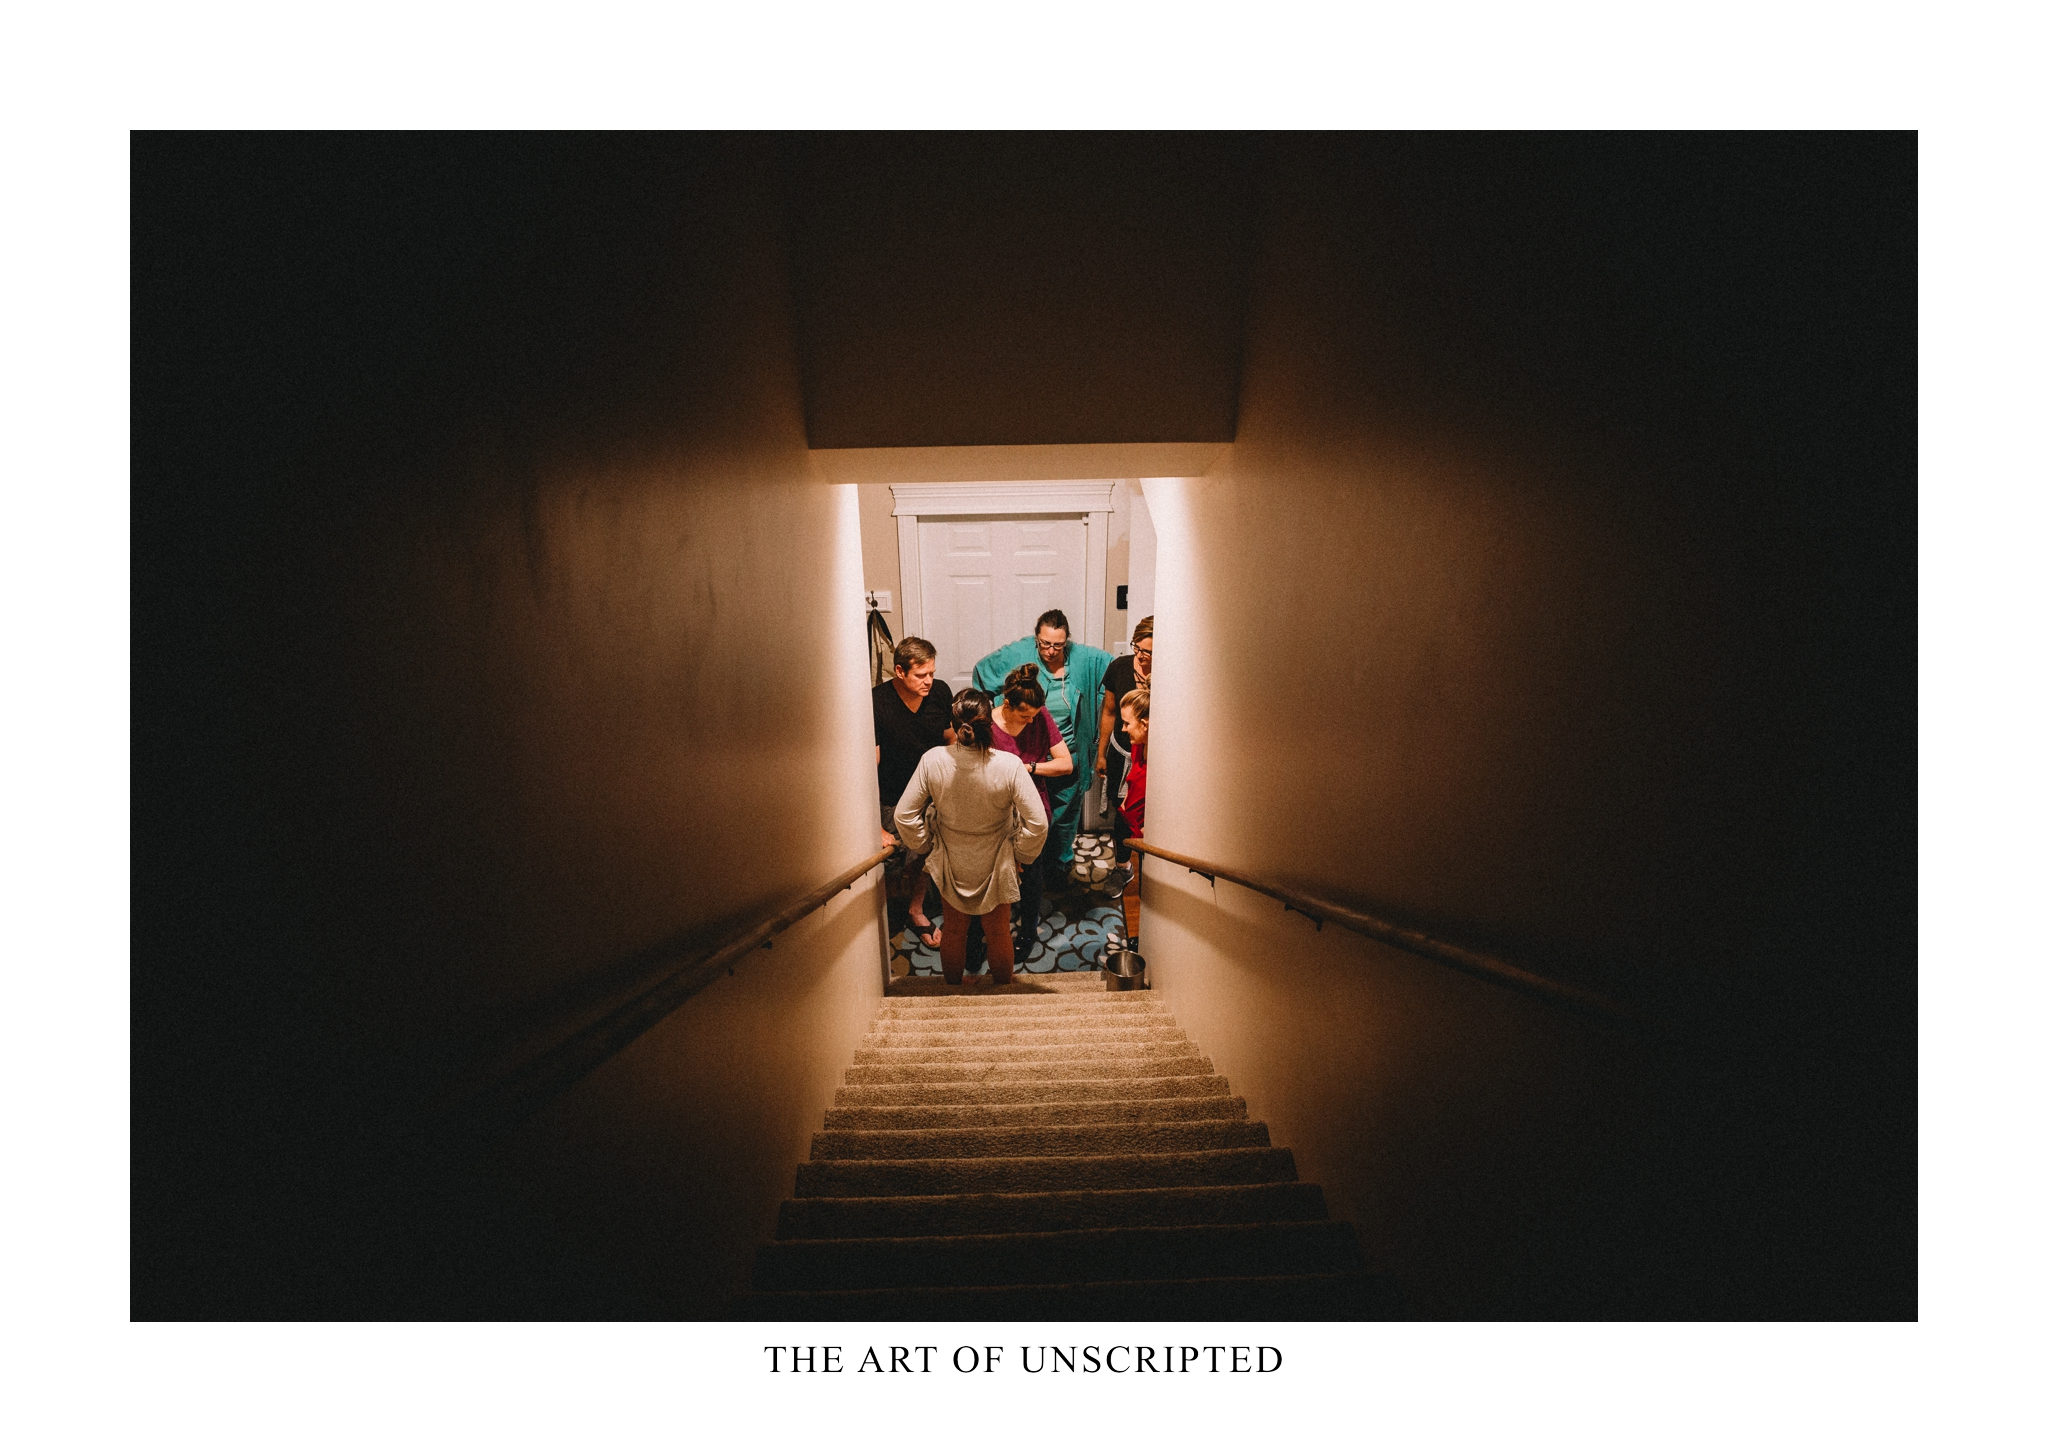 2017-06-10_092014__THE ART OF UNSCRIPTED_SPRINGFIELD MO_BIRTH PHOTOGRAPHER_ DOCUMENTARY_STORYTELLING_417_PHOTOGRAPHER